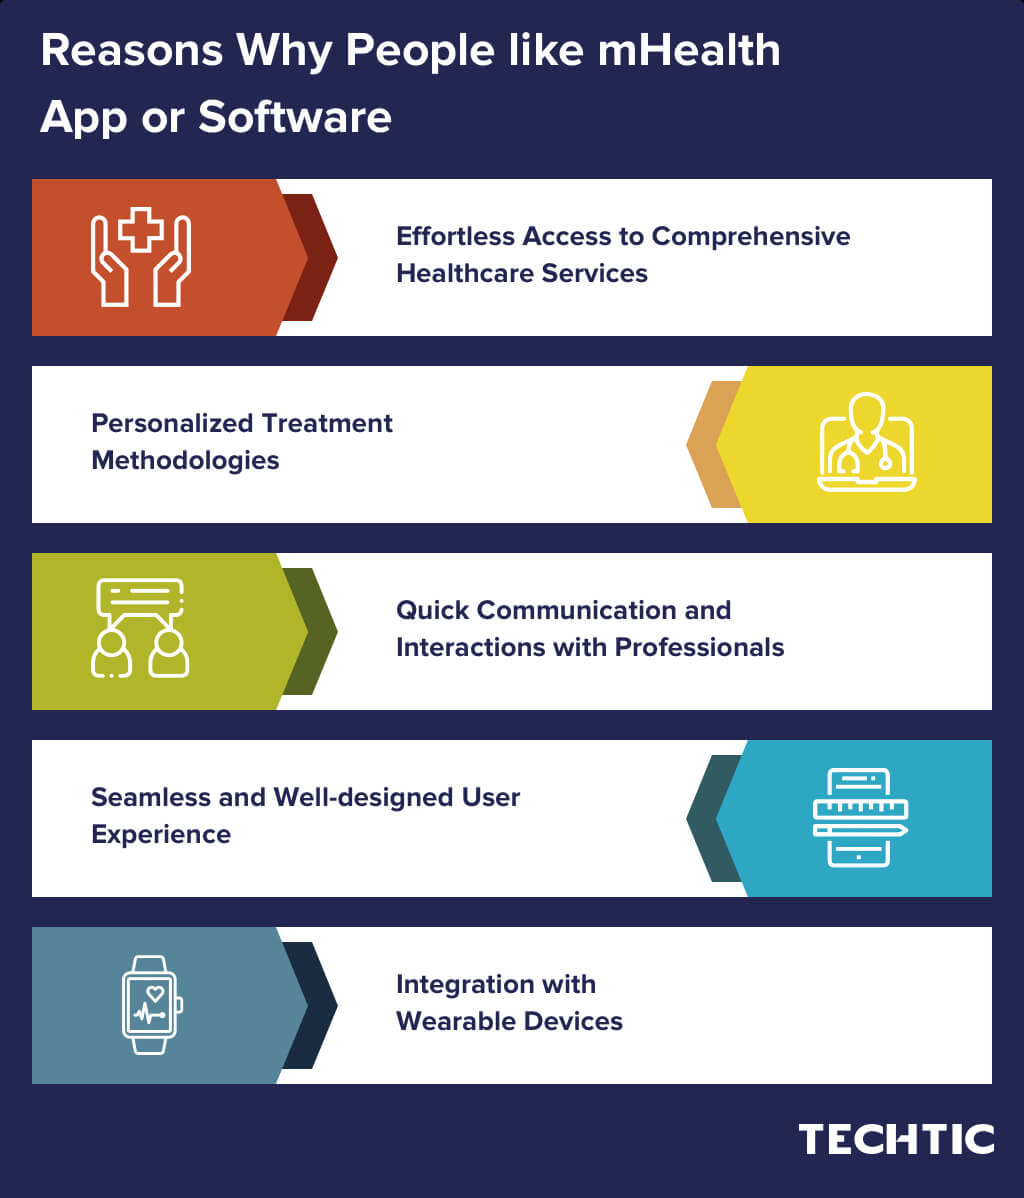 Reasons Why People like mHealth App or Software